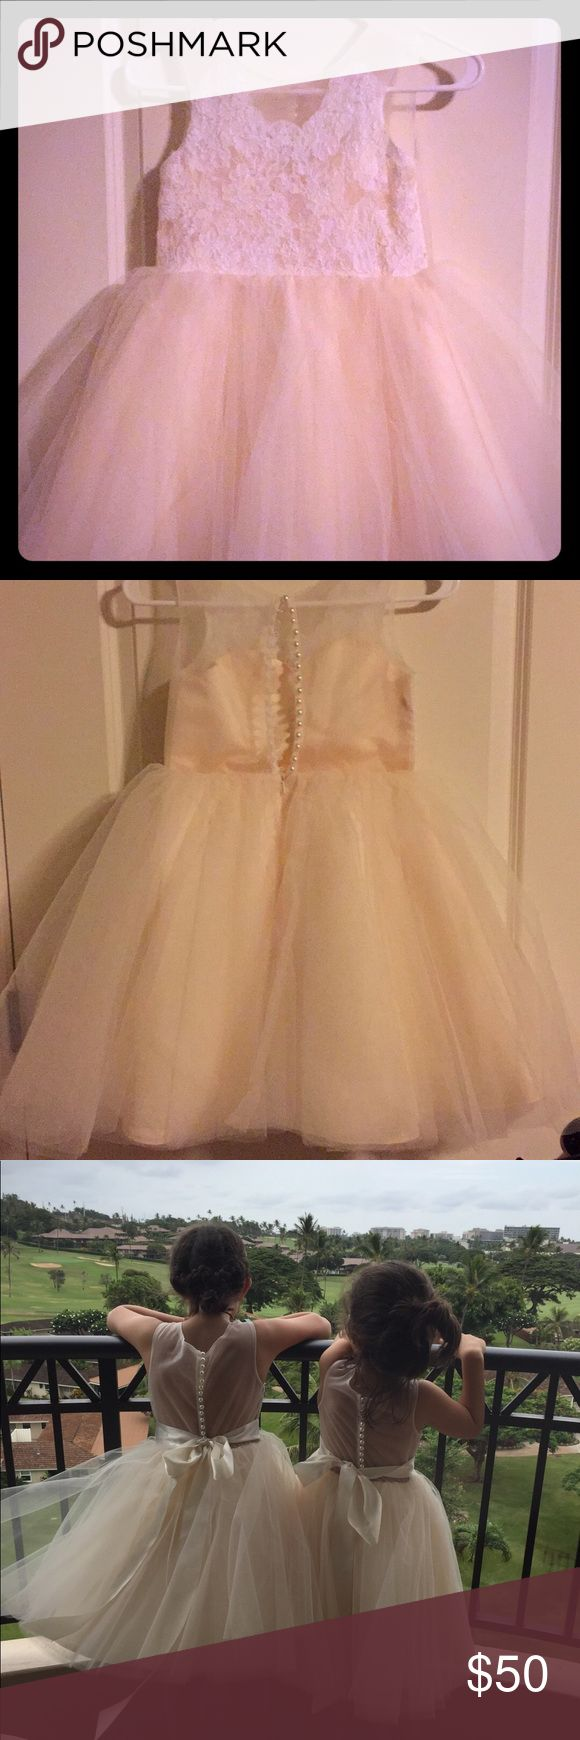 JJs House Girls White Tulle Lace Dresses Pretty white lace, tulle girls dresses Brand new condition Still has tags Also include satin belts These dresses are adorable Size 6 and 8 available JJs House Dresses Formal